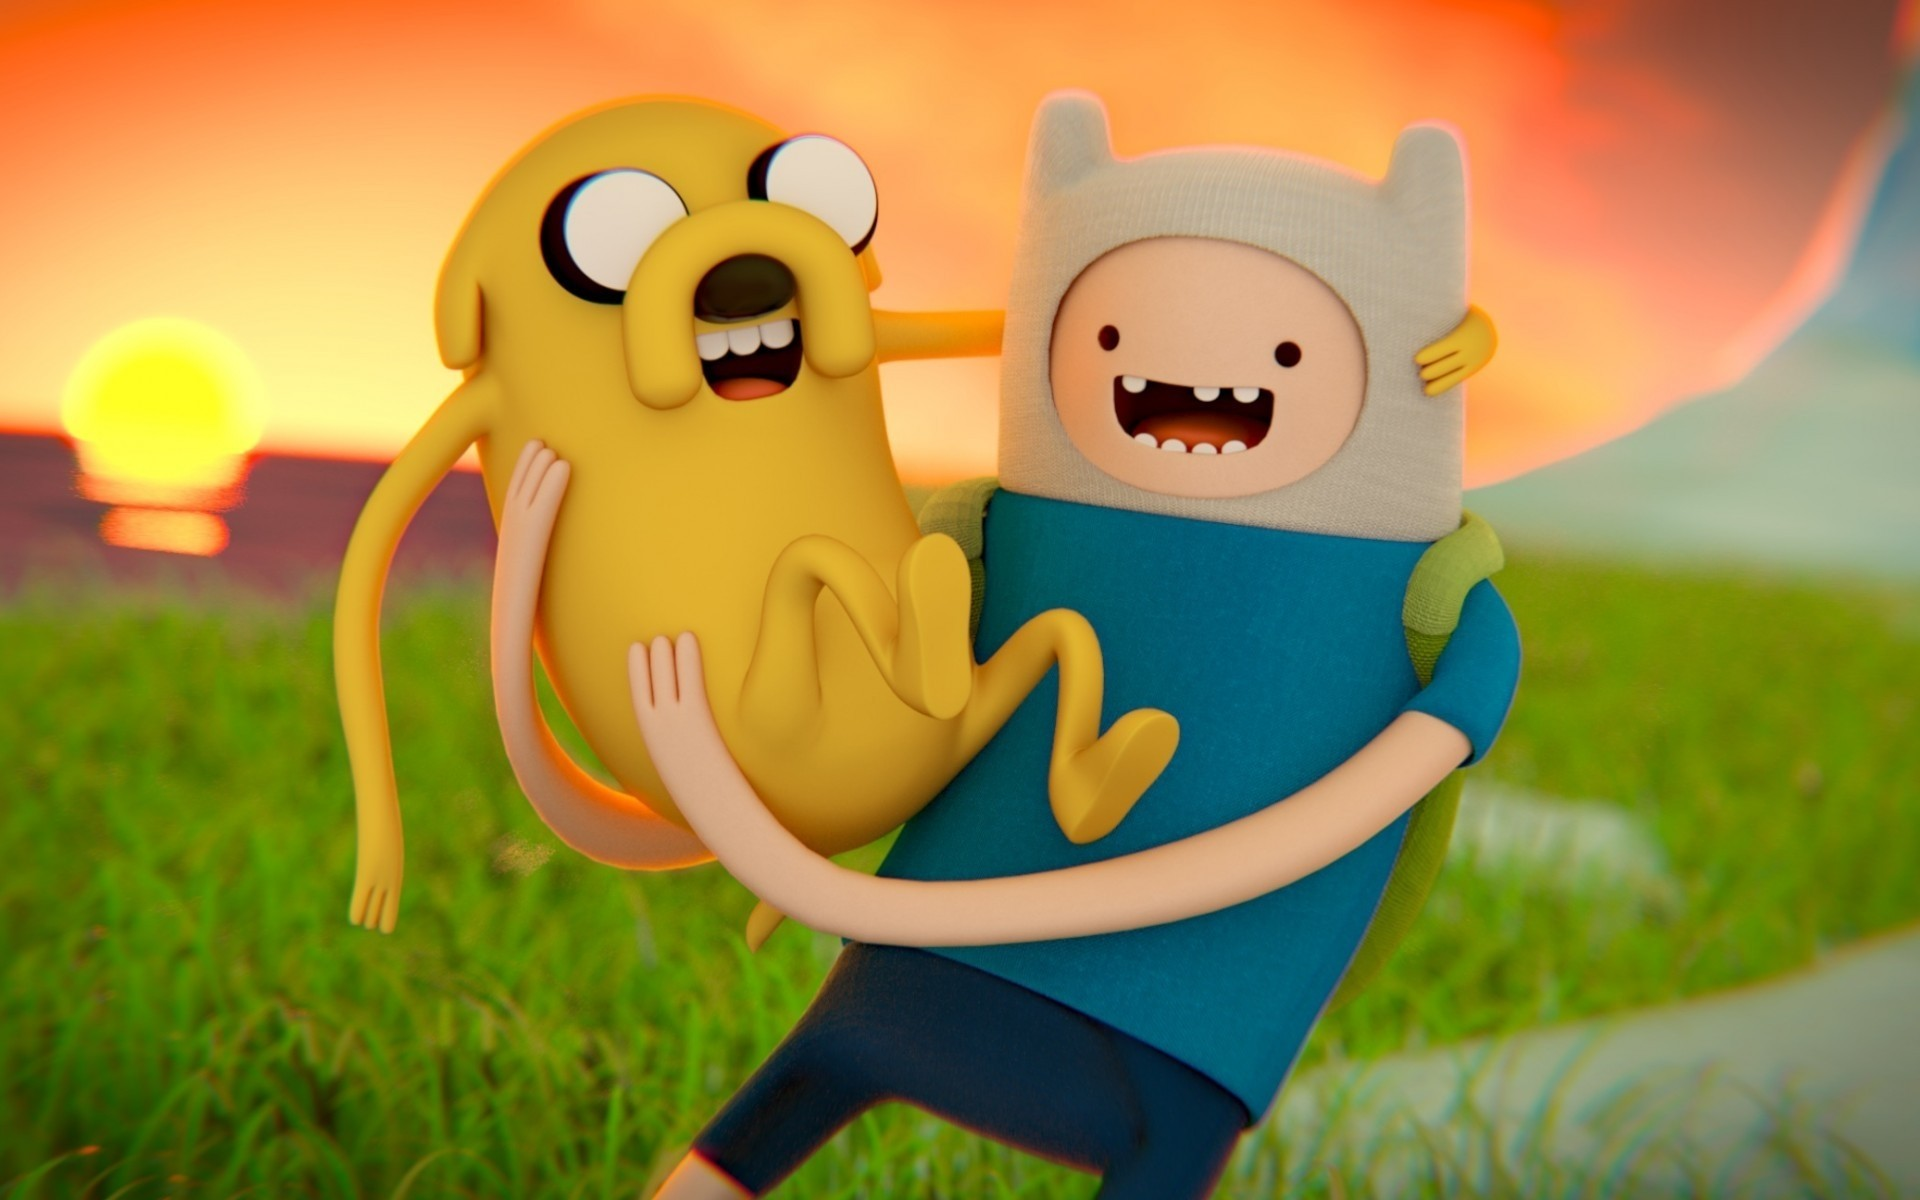 tv series grass fun toy nature cute child smile adventure time